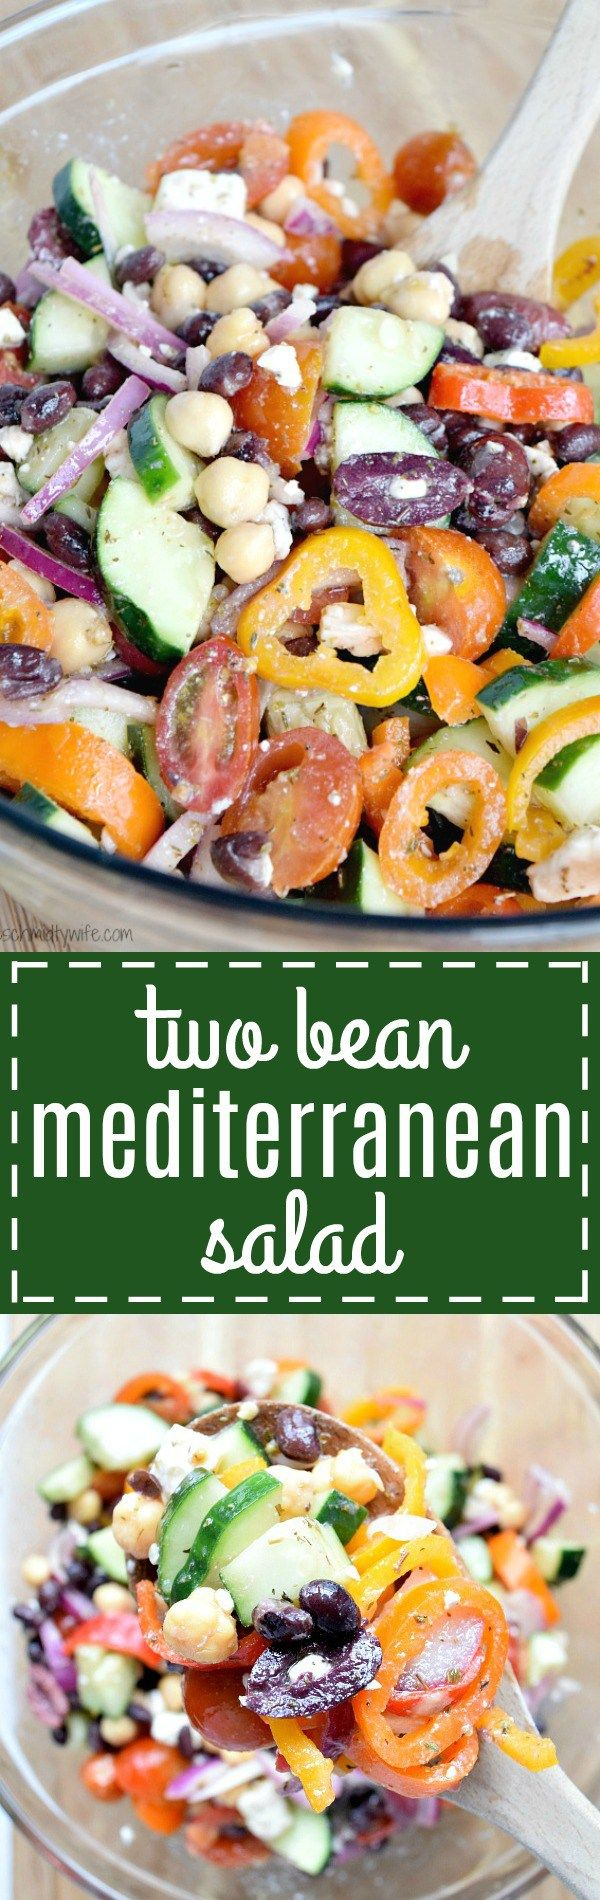 Two Bean Mediterranean Salad | The Schmidty Wife